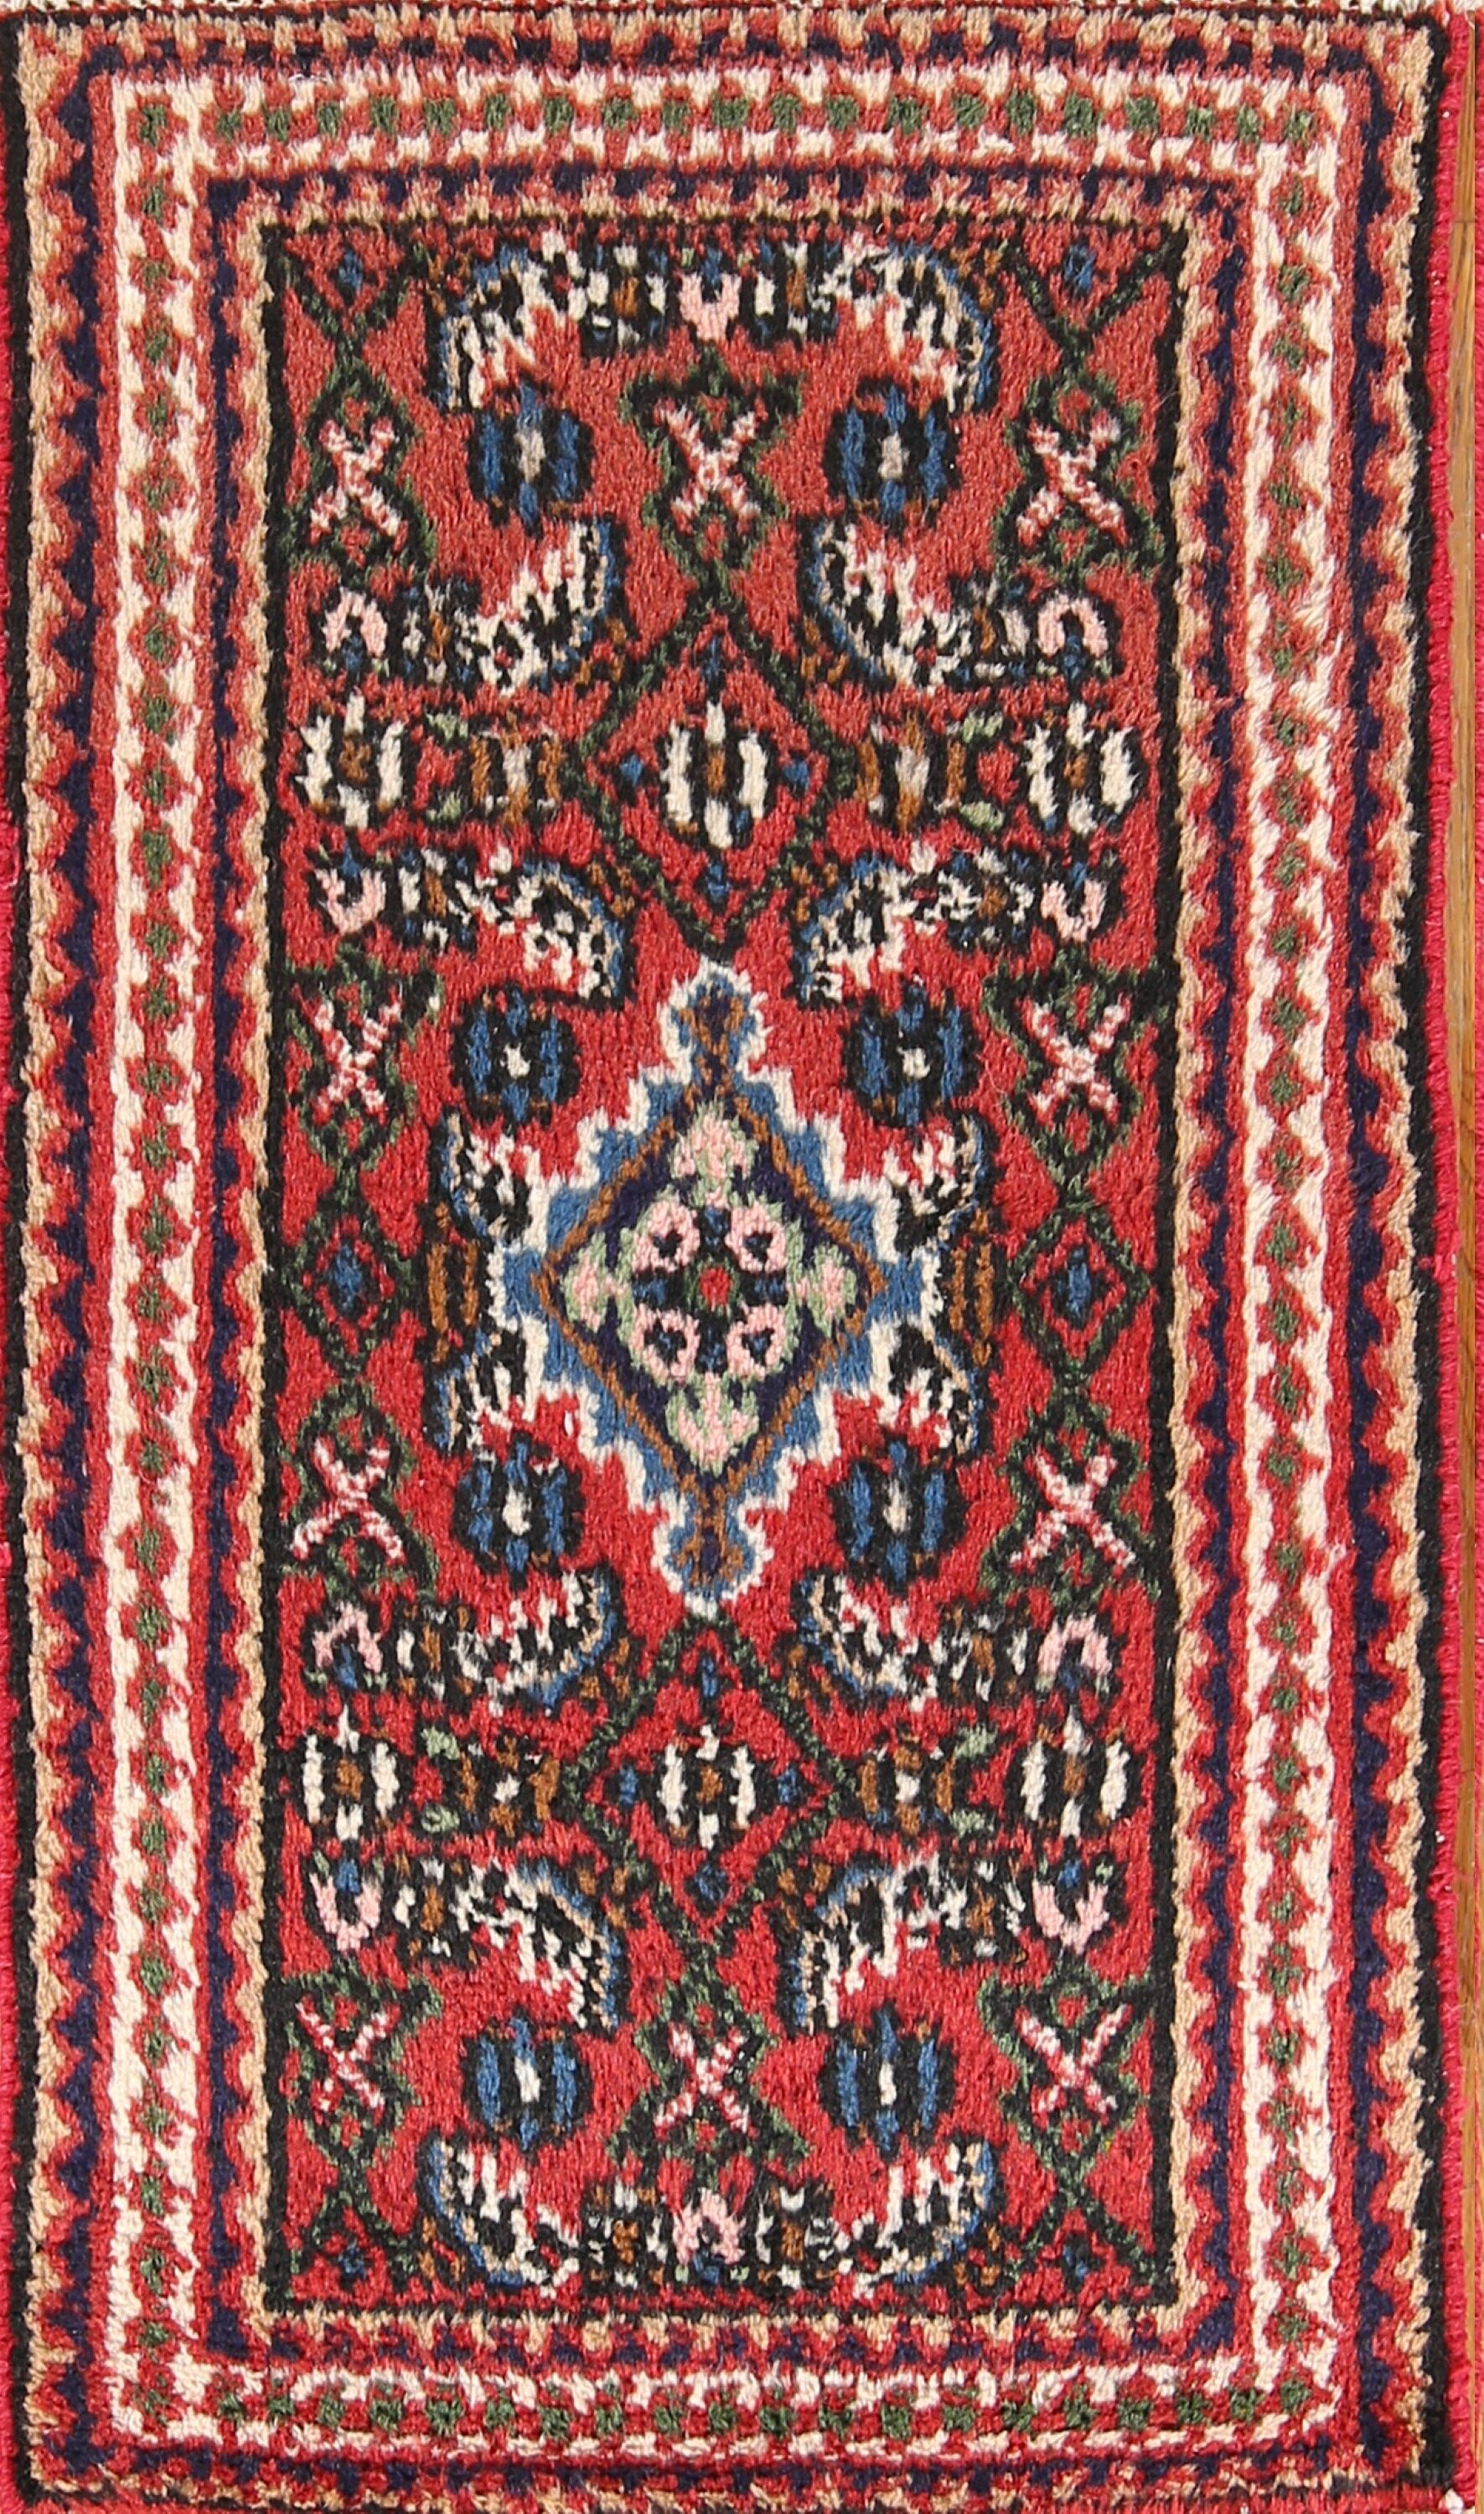 One-of-a-Kind Geometric Hamedan Vintage Persian Hand-Knotted 1'7